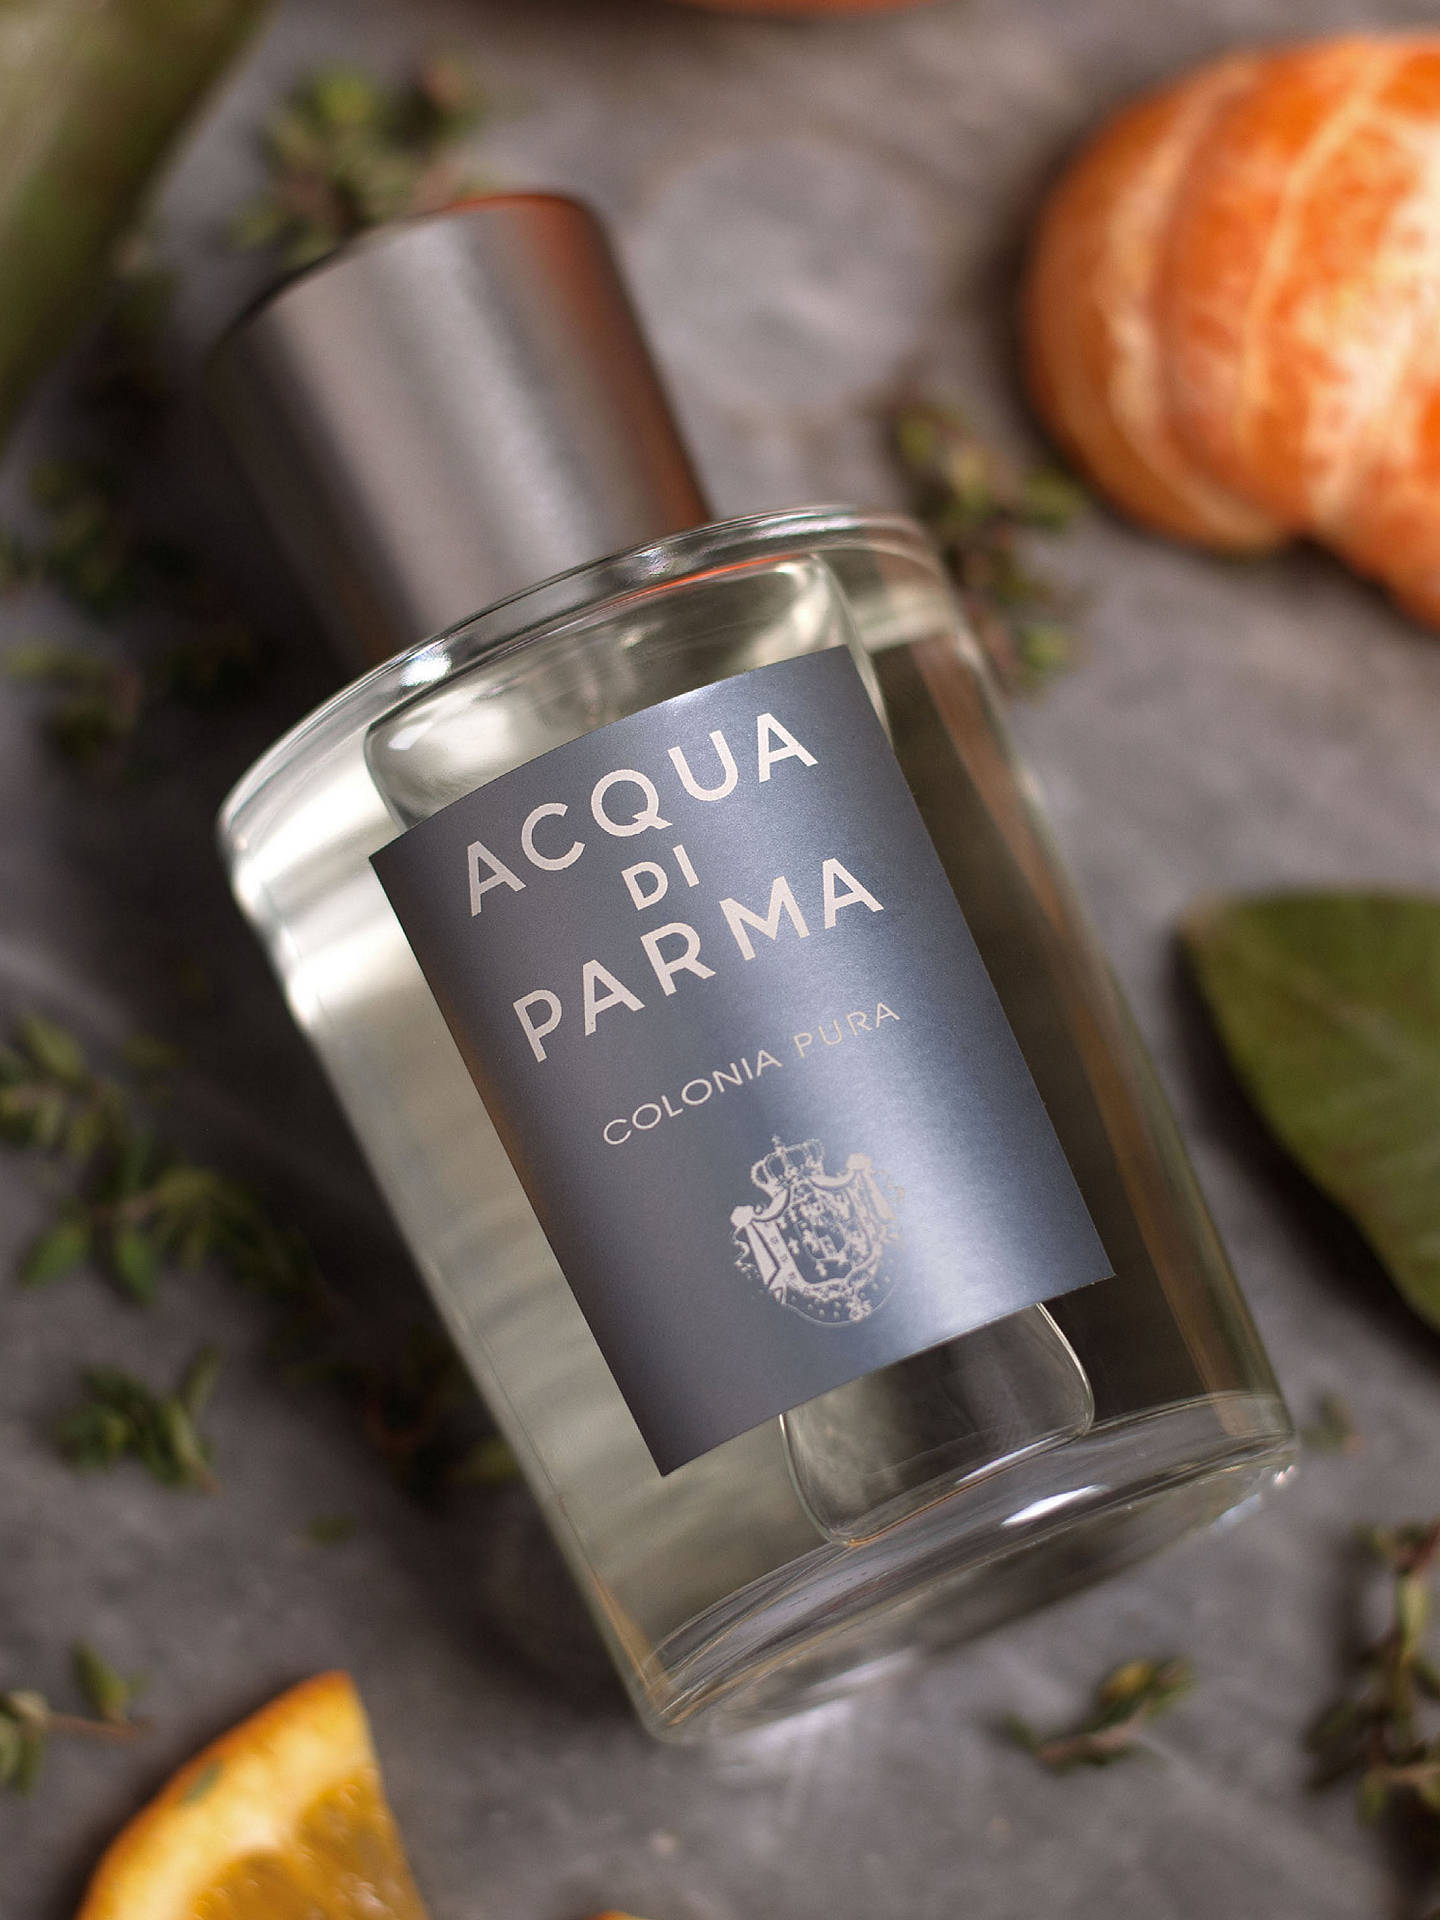 Buy Acqua di Parma Colonia Pura Eau de Cologne, 50ml Online at johnlewis.com